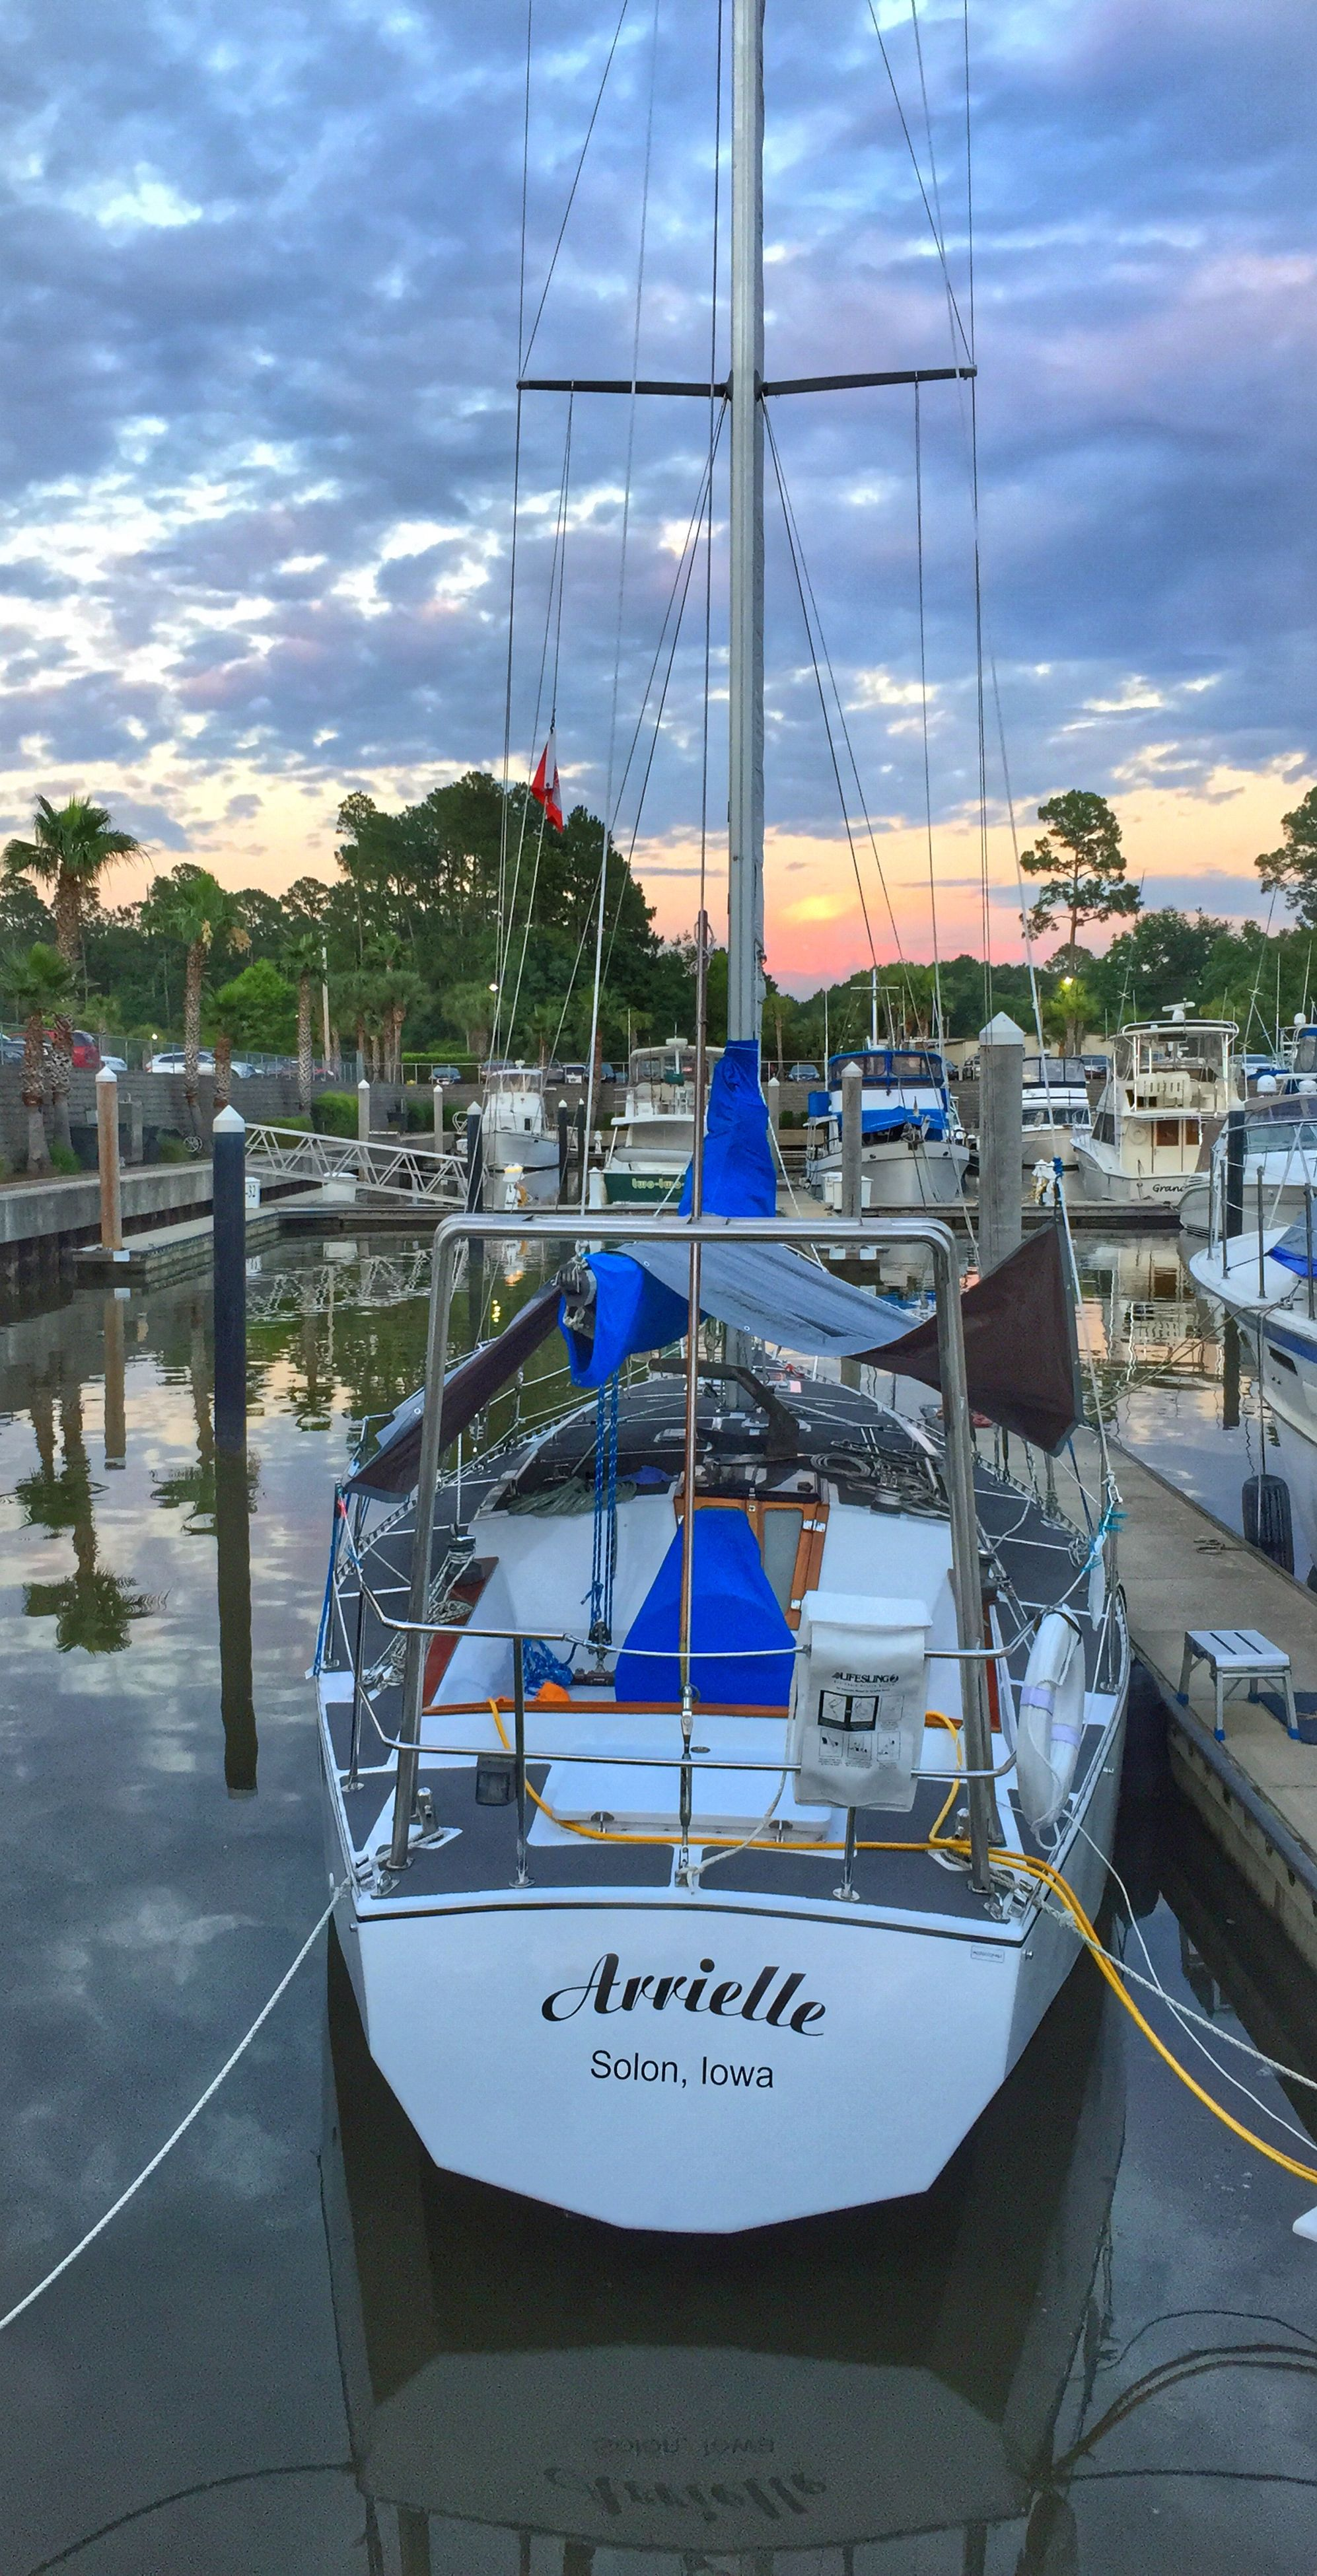 nautical vessel, transportation, sky, mode of transport, moored, boat, water, cloud - sky, mast, cloud, sailboat, sea, cloudy, harbor, travel, nature, reflection, tranquility, outdoors, river